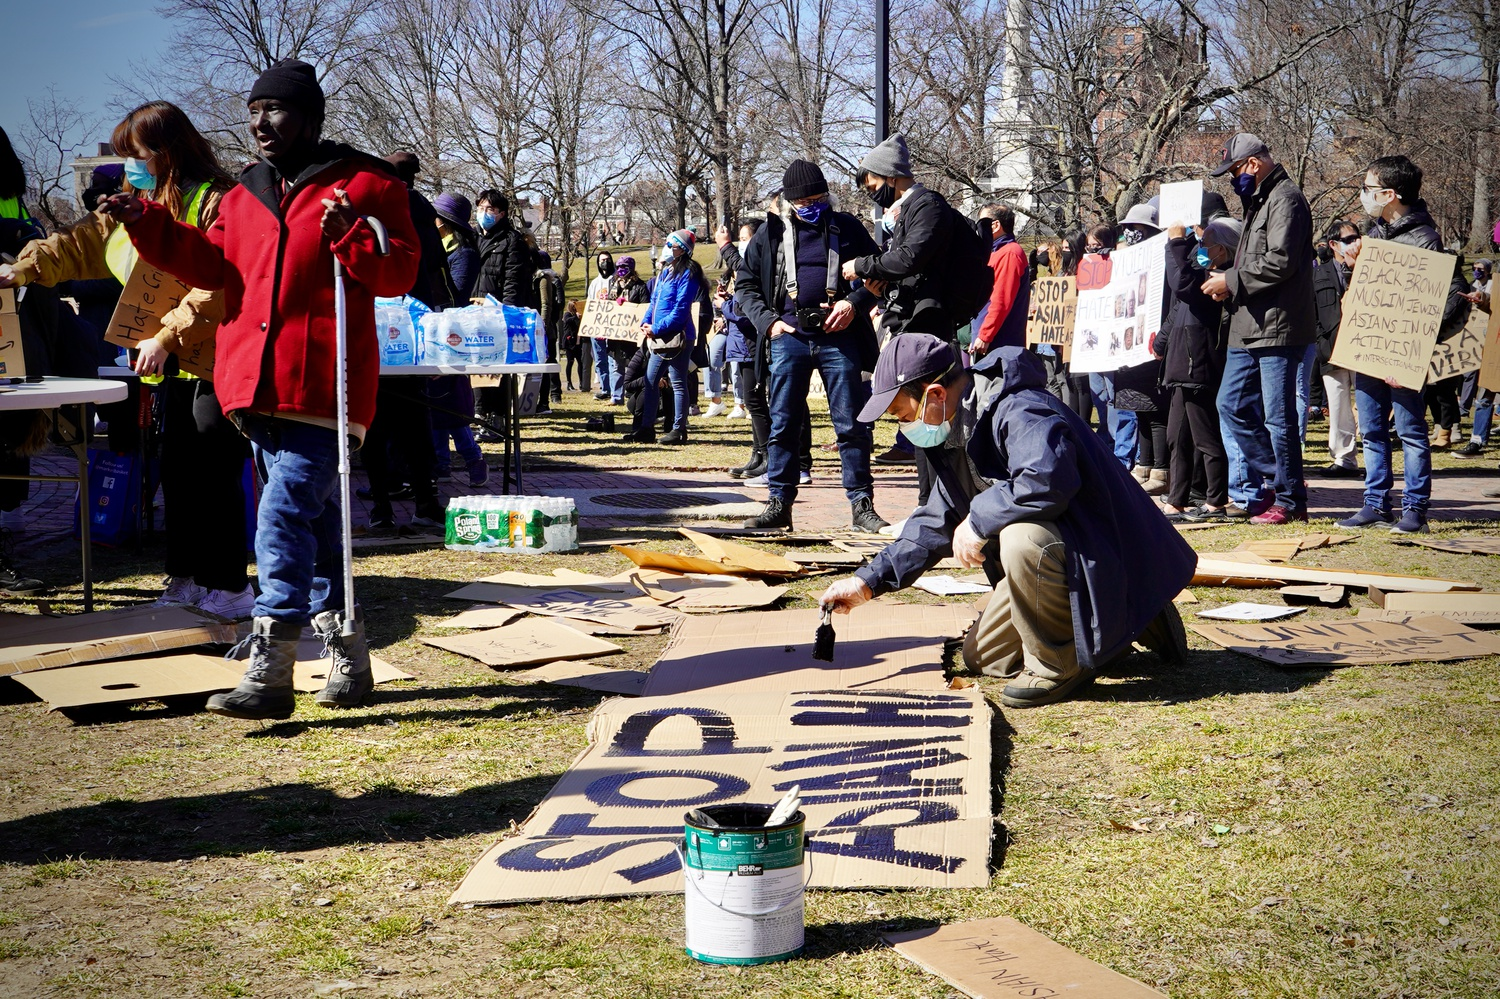 Attendees of the Rally against AAPI Violence in Boston Common paint signs with messages of solidarity.